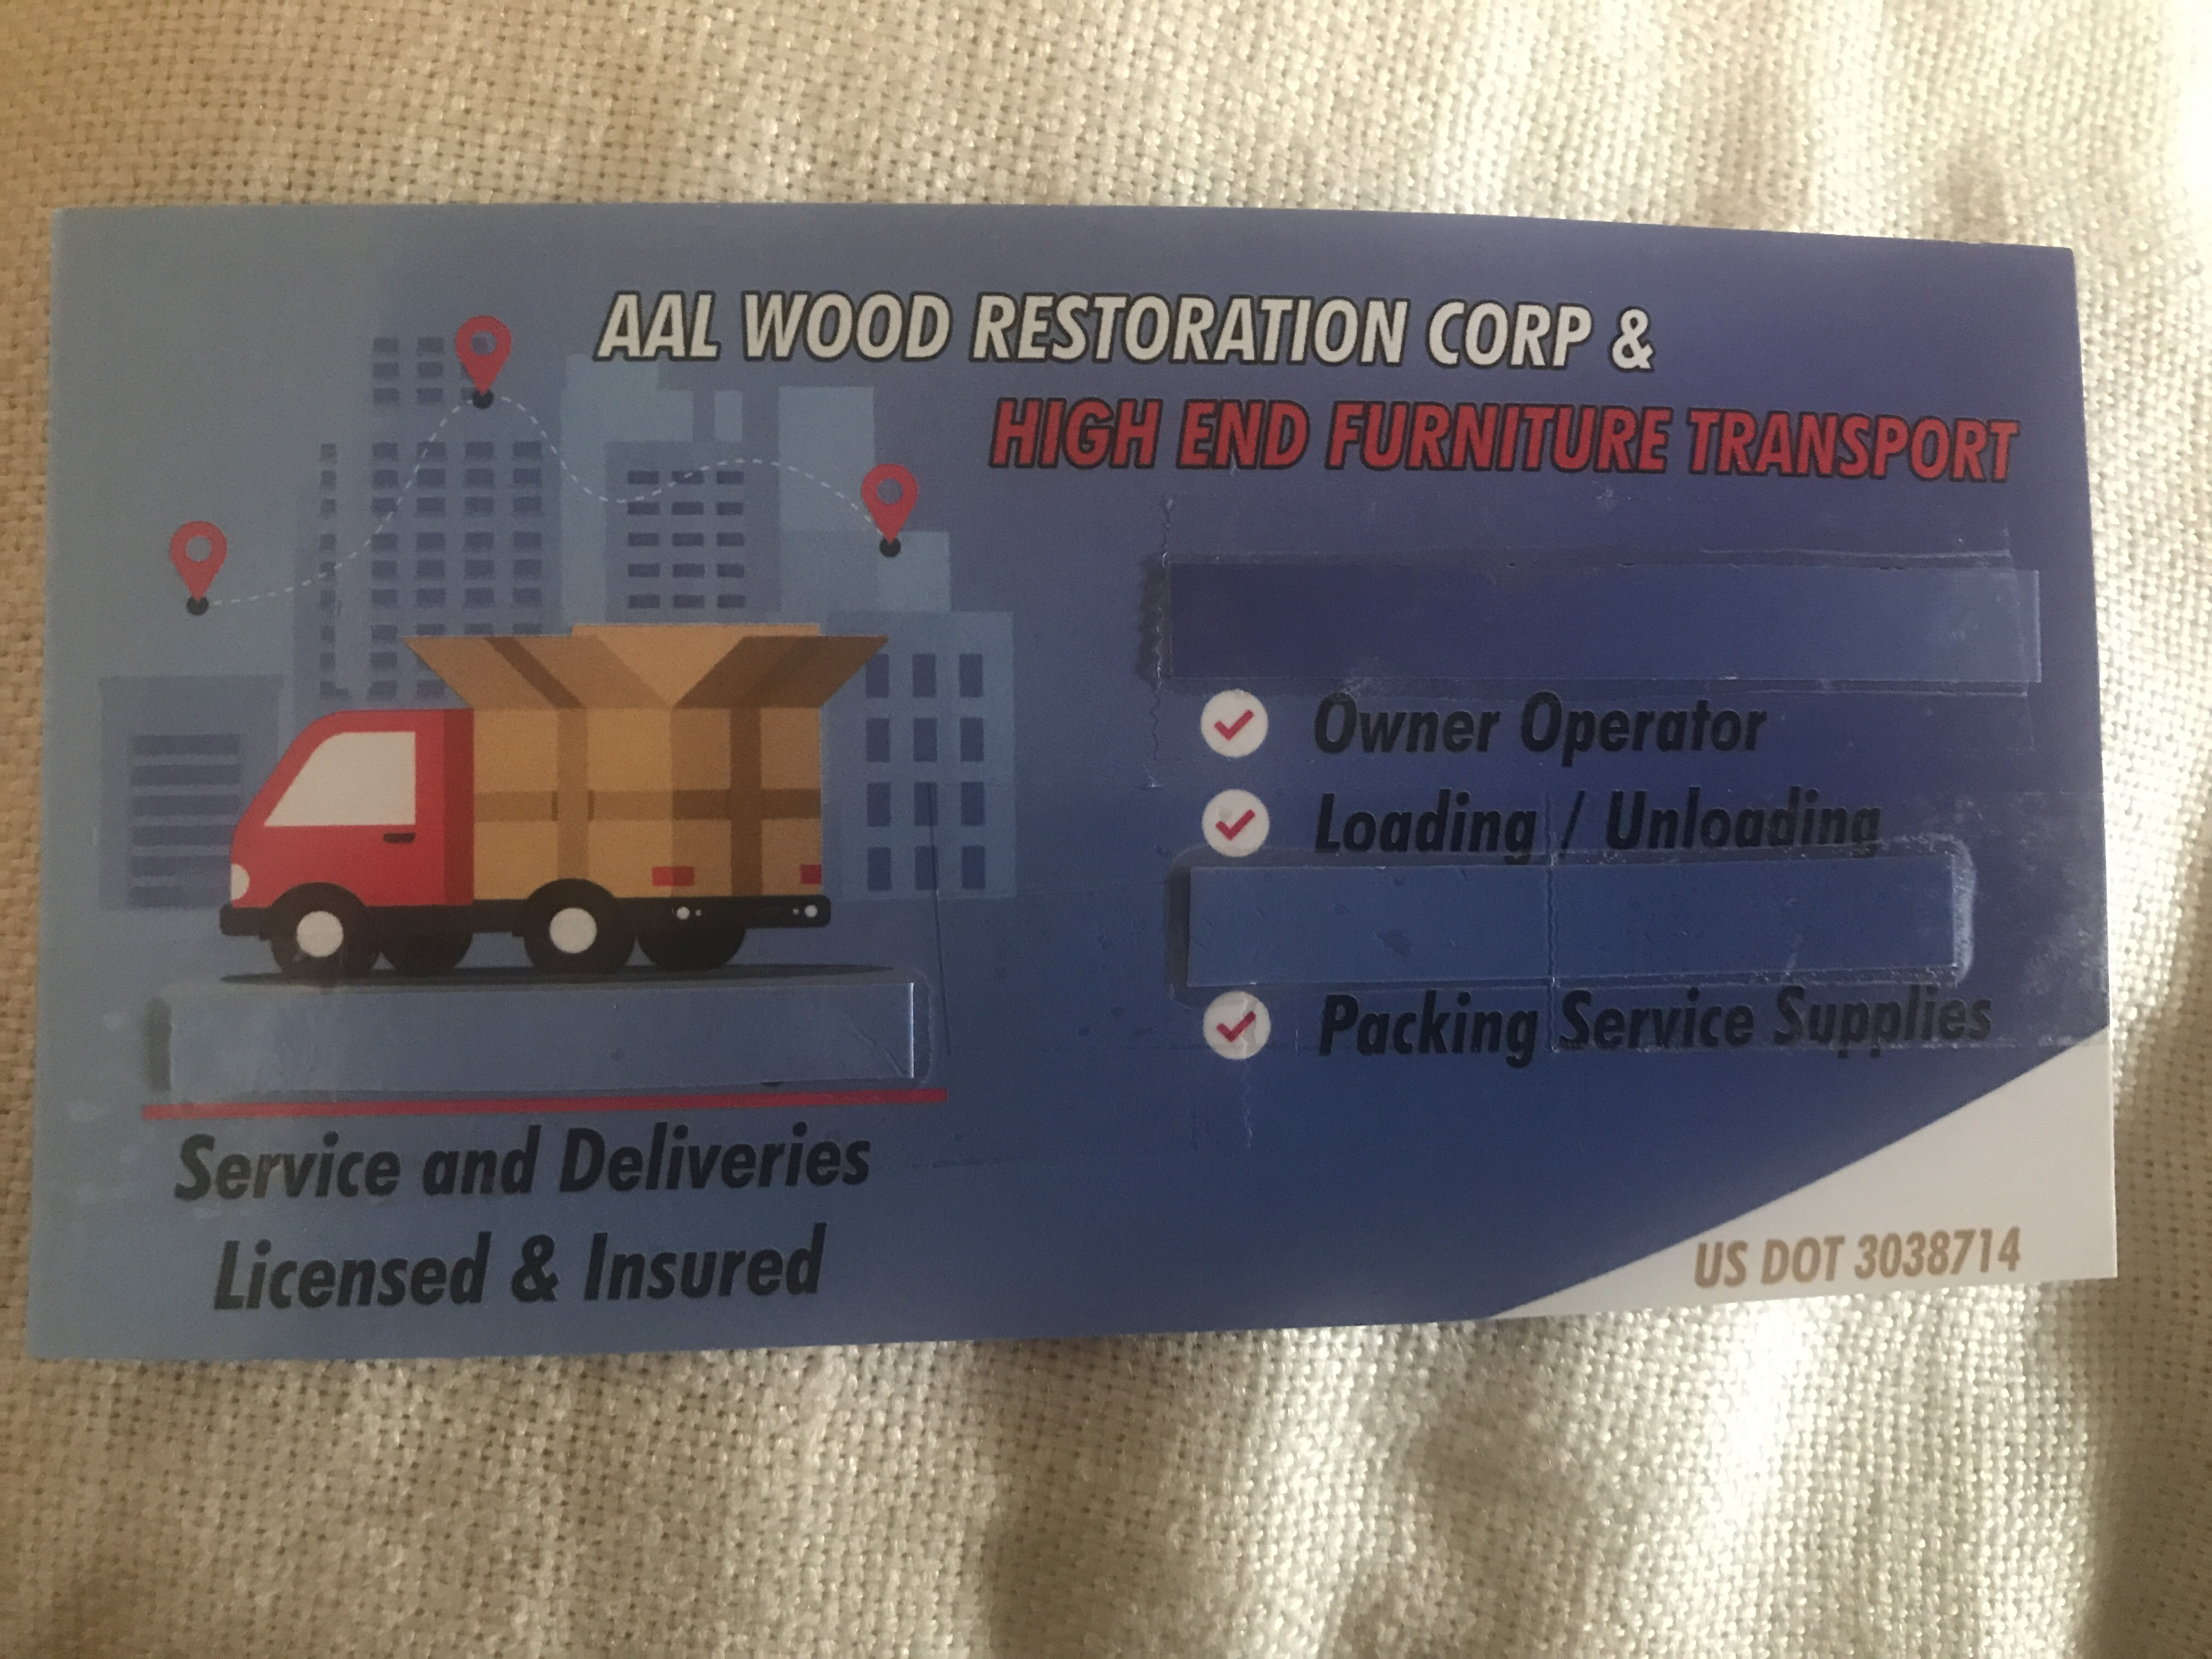 AAL Wood Restoration Corp